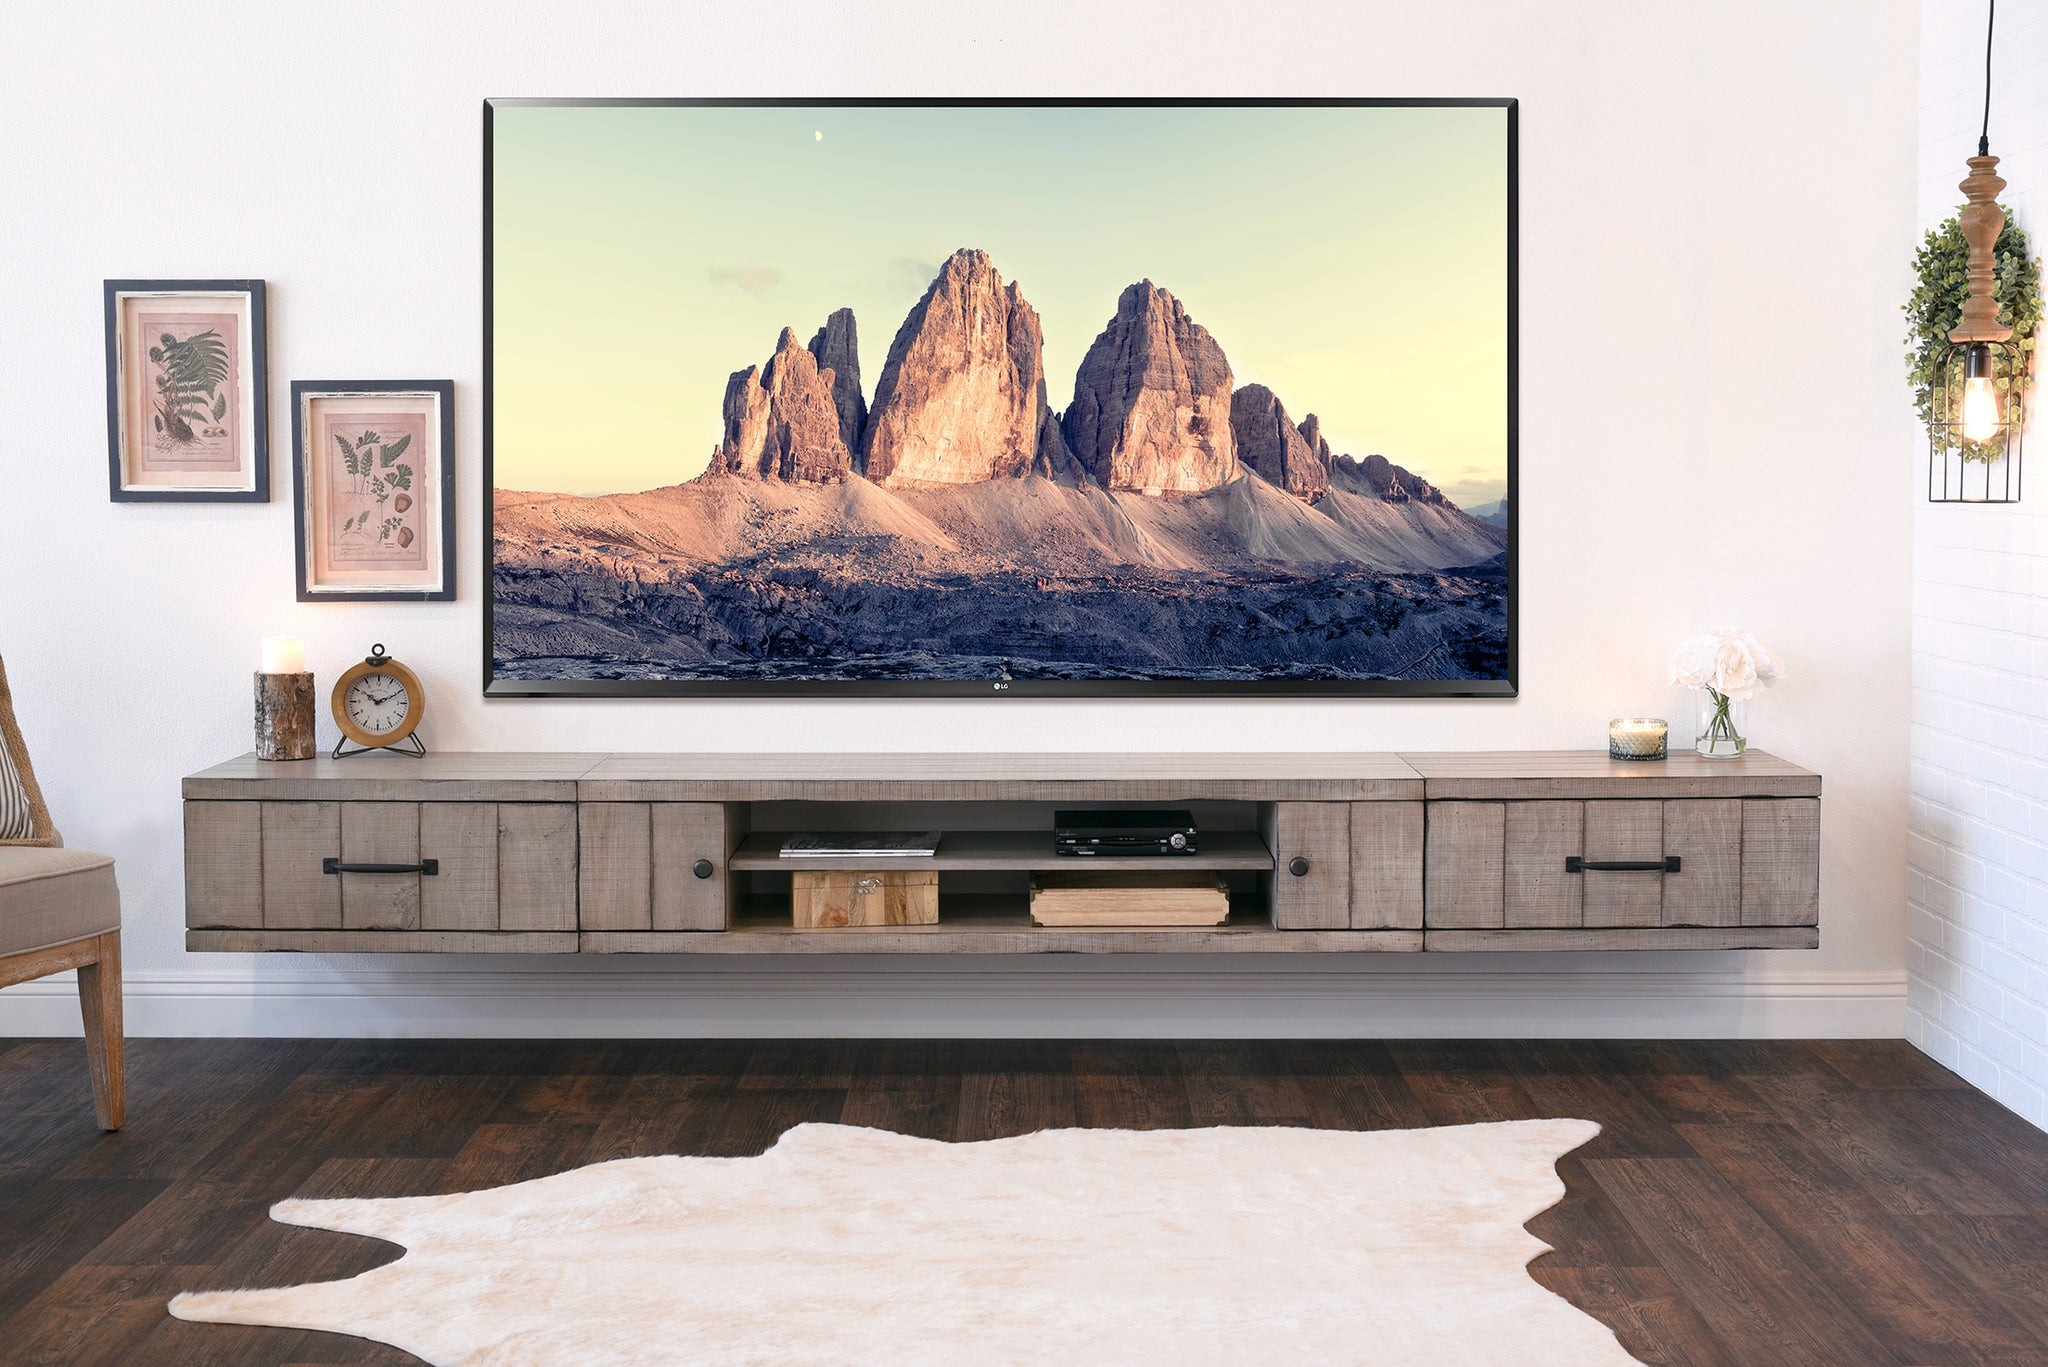 Gray Rustic Barn Wood Style Floating TV Stand Entertainment Center   Farmhouse Driftwood Rustic Entertainment Center N51